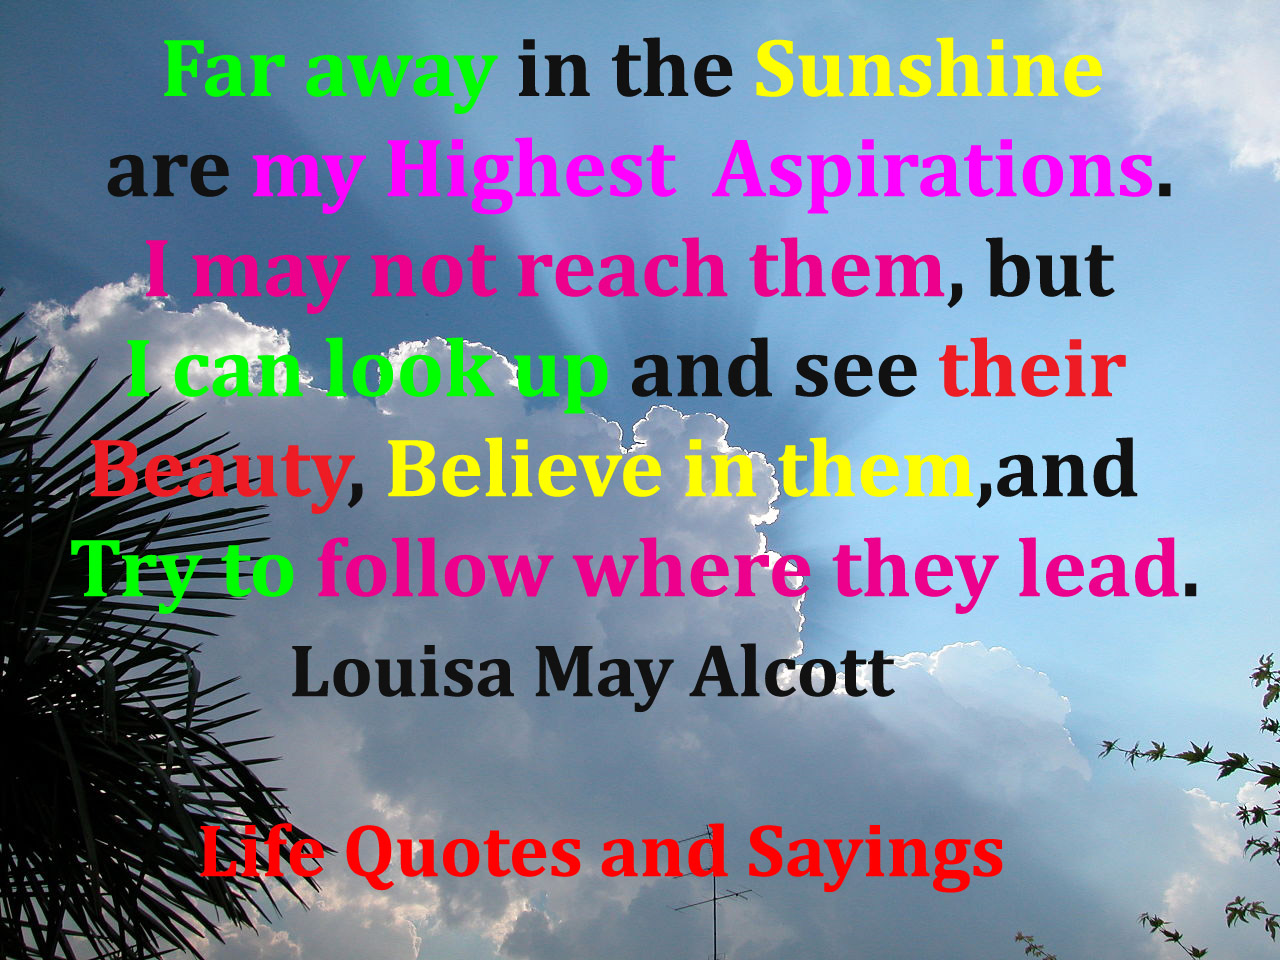 Far away there in the sunshine are my highest aspirations. I may not reach them, but I can look up and see their beauty, believe... Louisa May Alcott